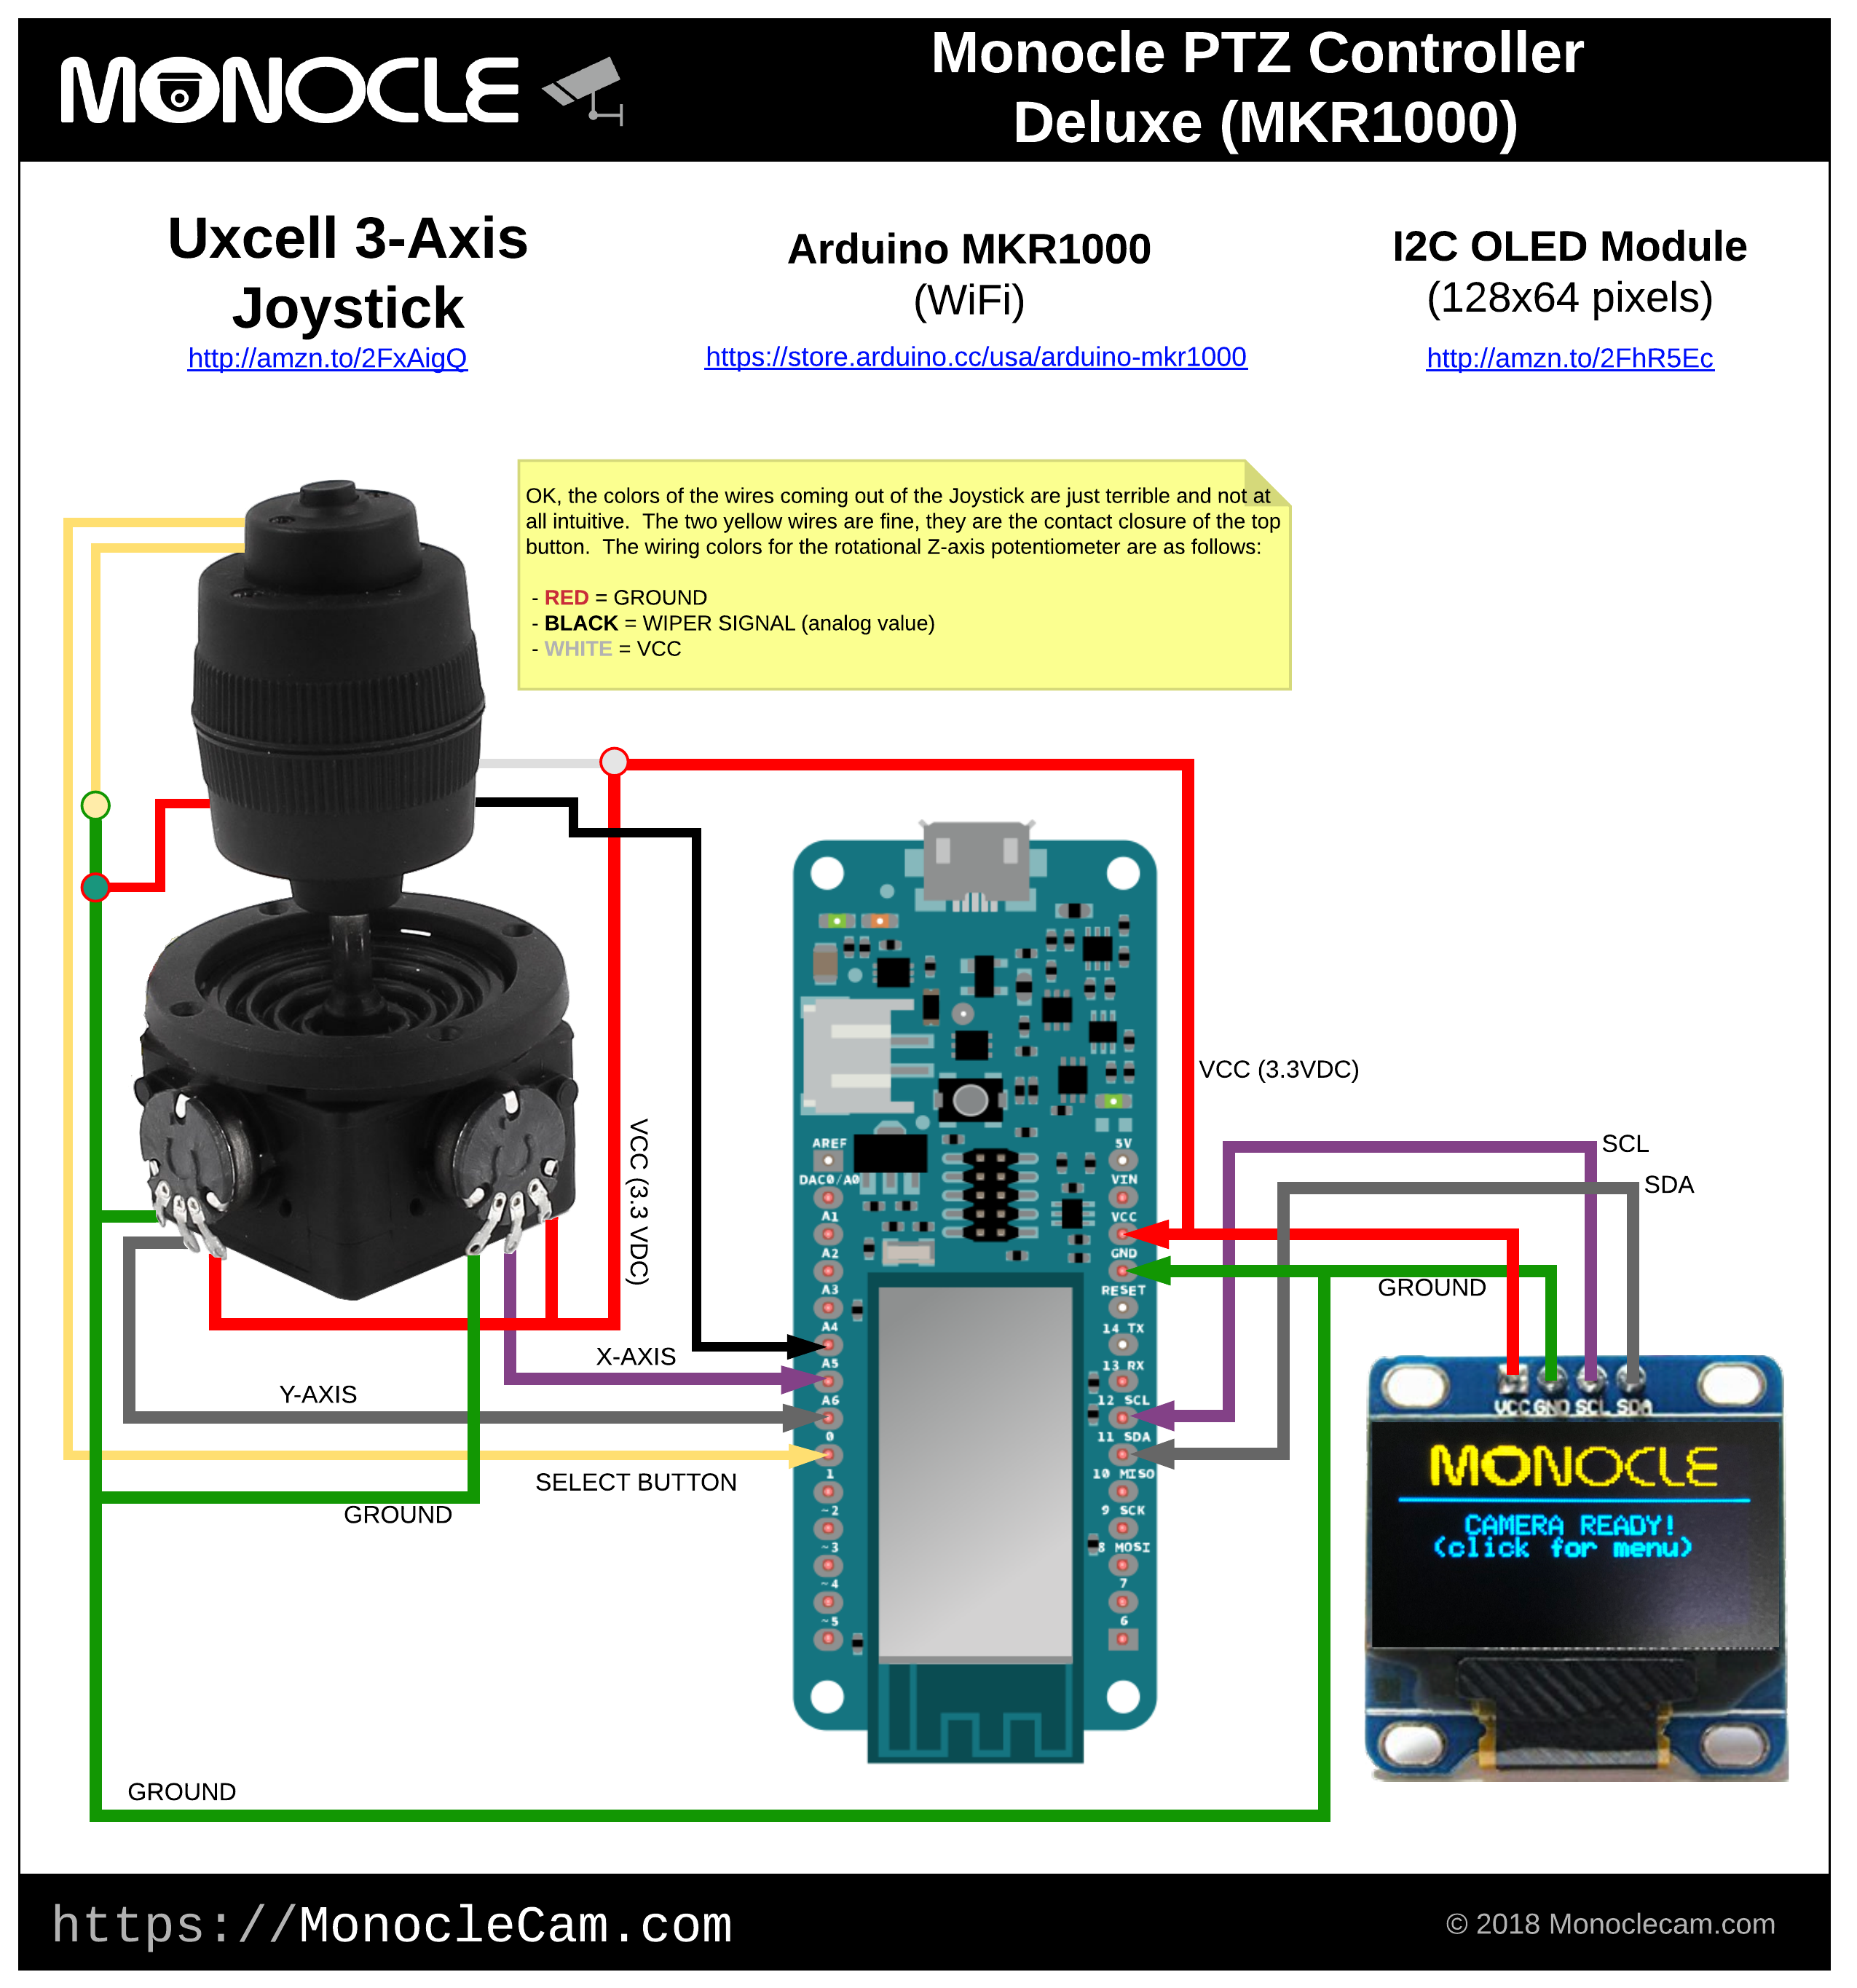 Monocle: View & Control IP Cameras with Alexa & Arduino - ster.io on joystick circuit, joystick cable, joystick parts, joystick switch, joystick connector, joysticks connections diagram, joystick schematic diagram, joystick 6 pin wiring, plow joystick diagram, western plow pump diagram, western joystick wire diagram, western plow hydraulic diagram,